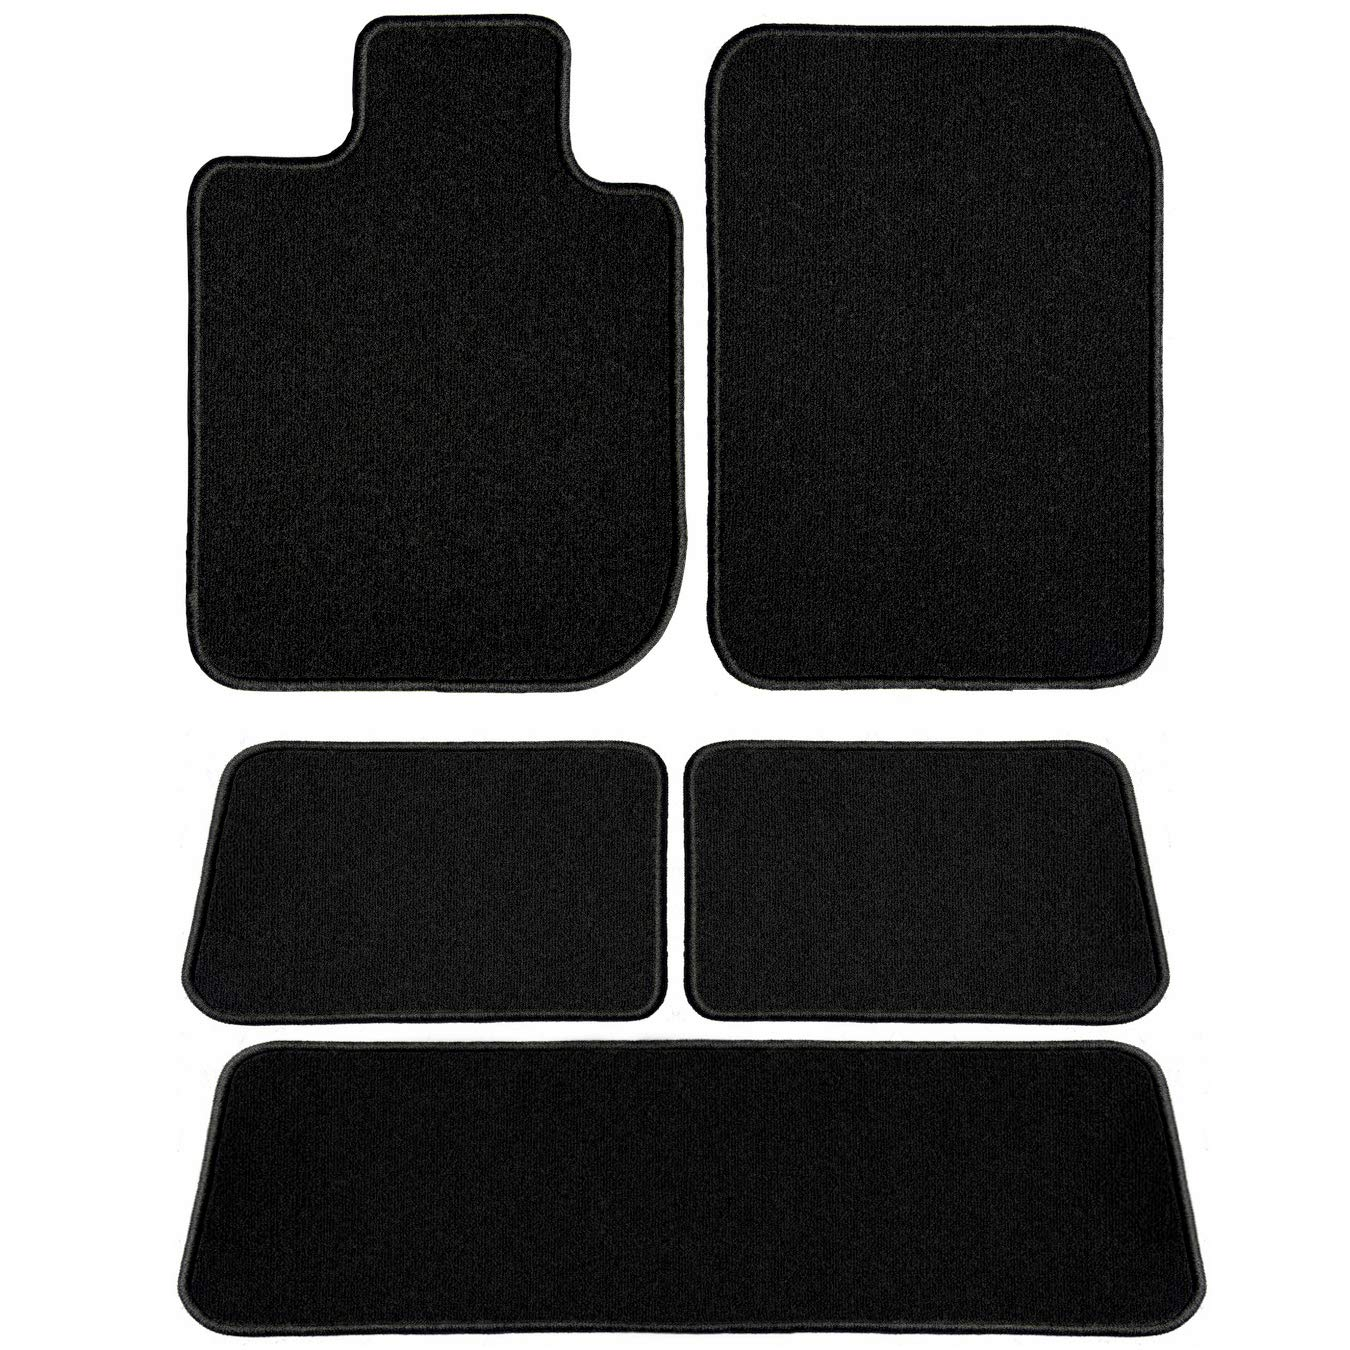 2013 2015 GGBAILEY D60290-LSB-BLK Custom Fit Car Mats for 2012 2nd /& 3rd Row 2014 5 Piece Floor 2016 Chrysler Town /& Country Black Driver Passenger